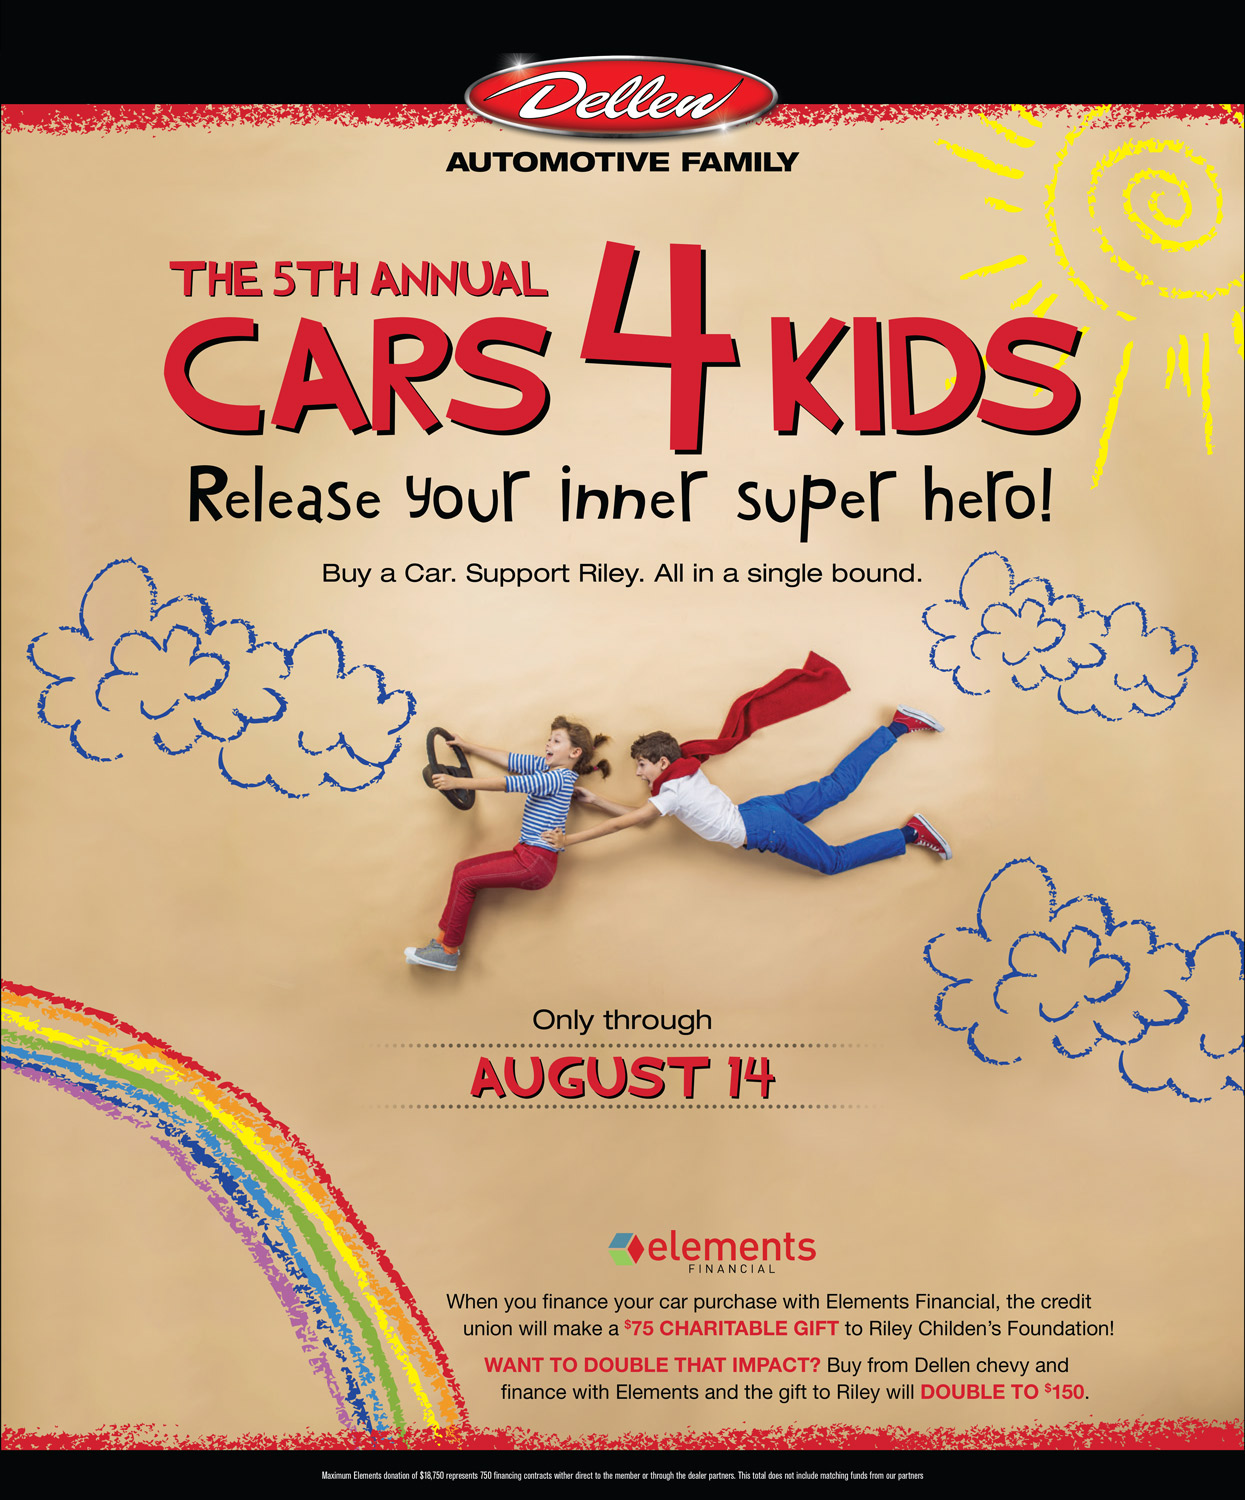 Dellen 5th Annual Cars 4 Kids